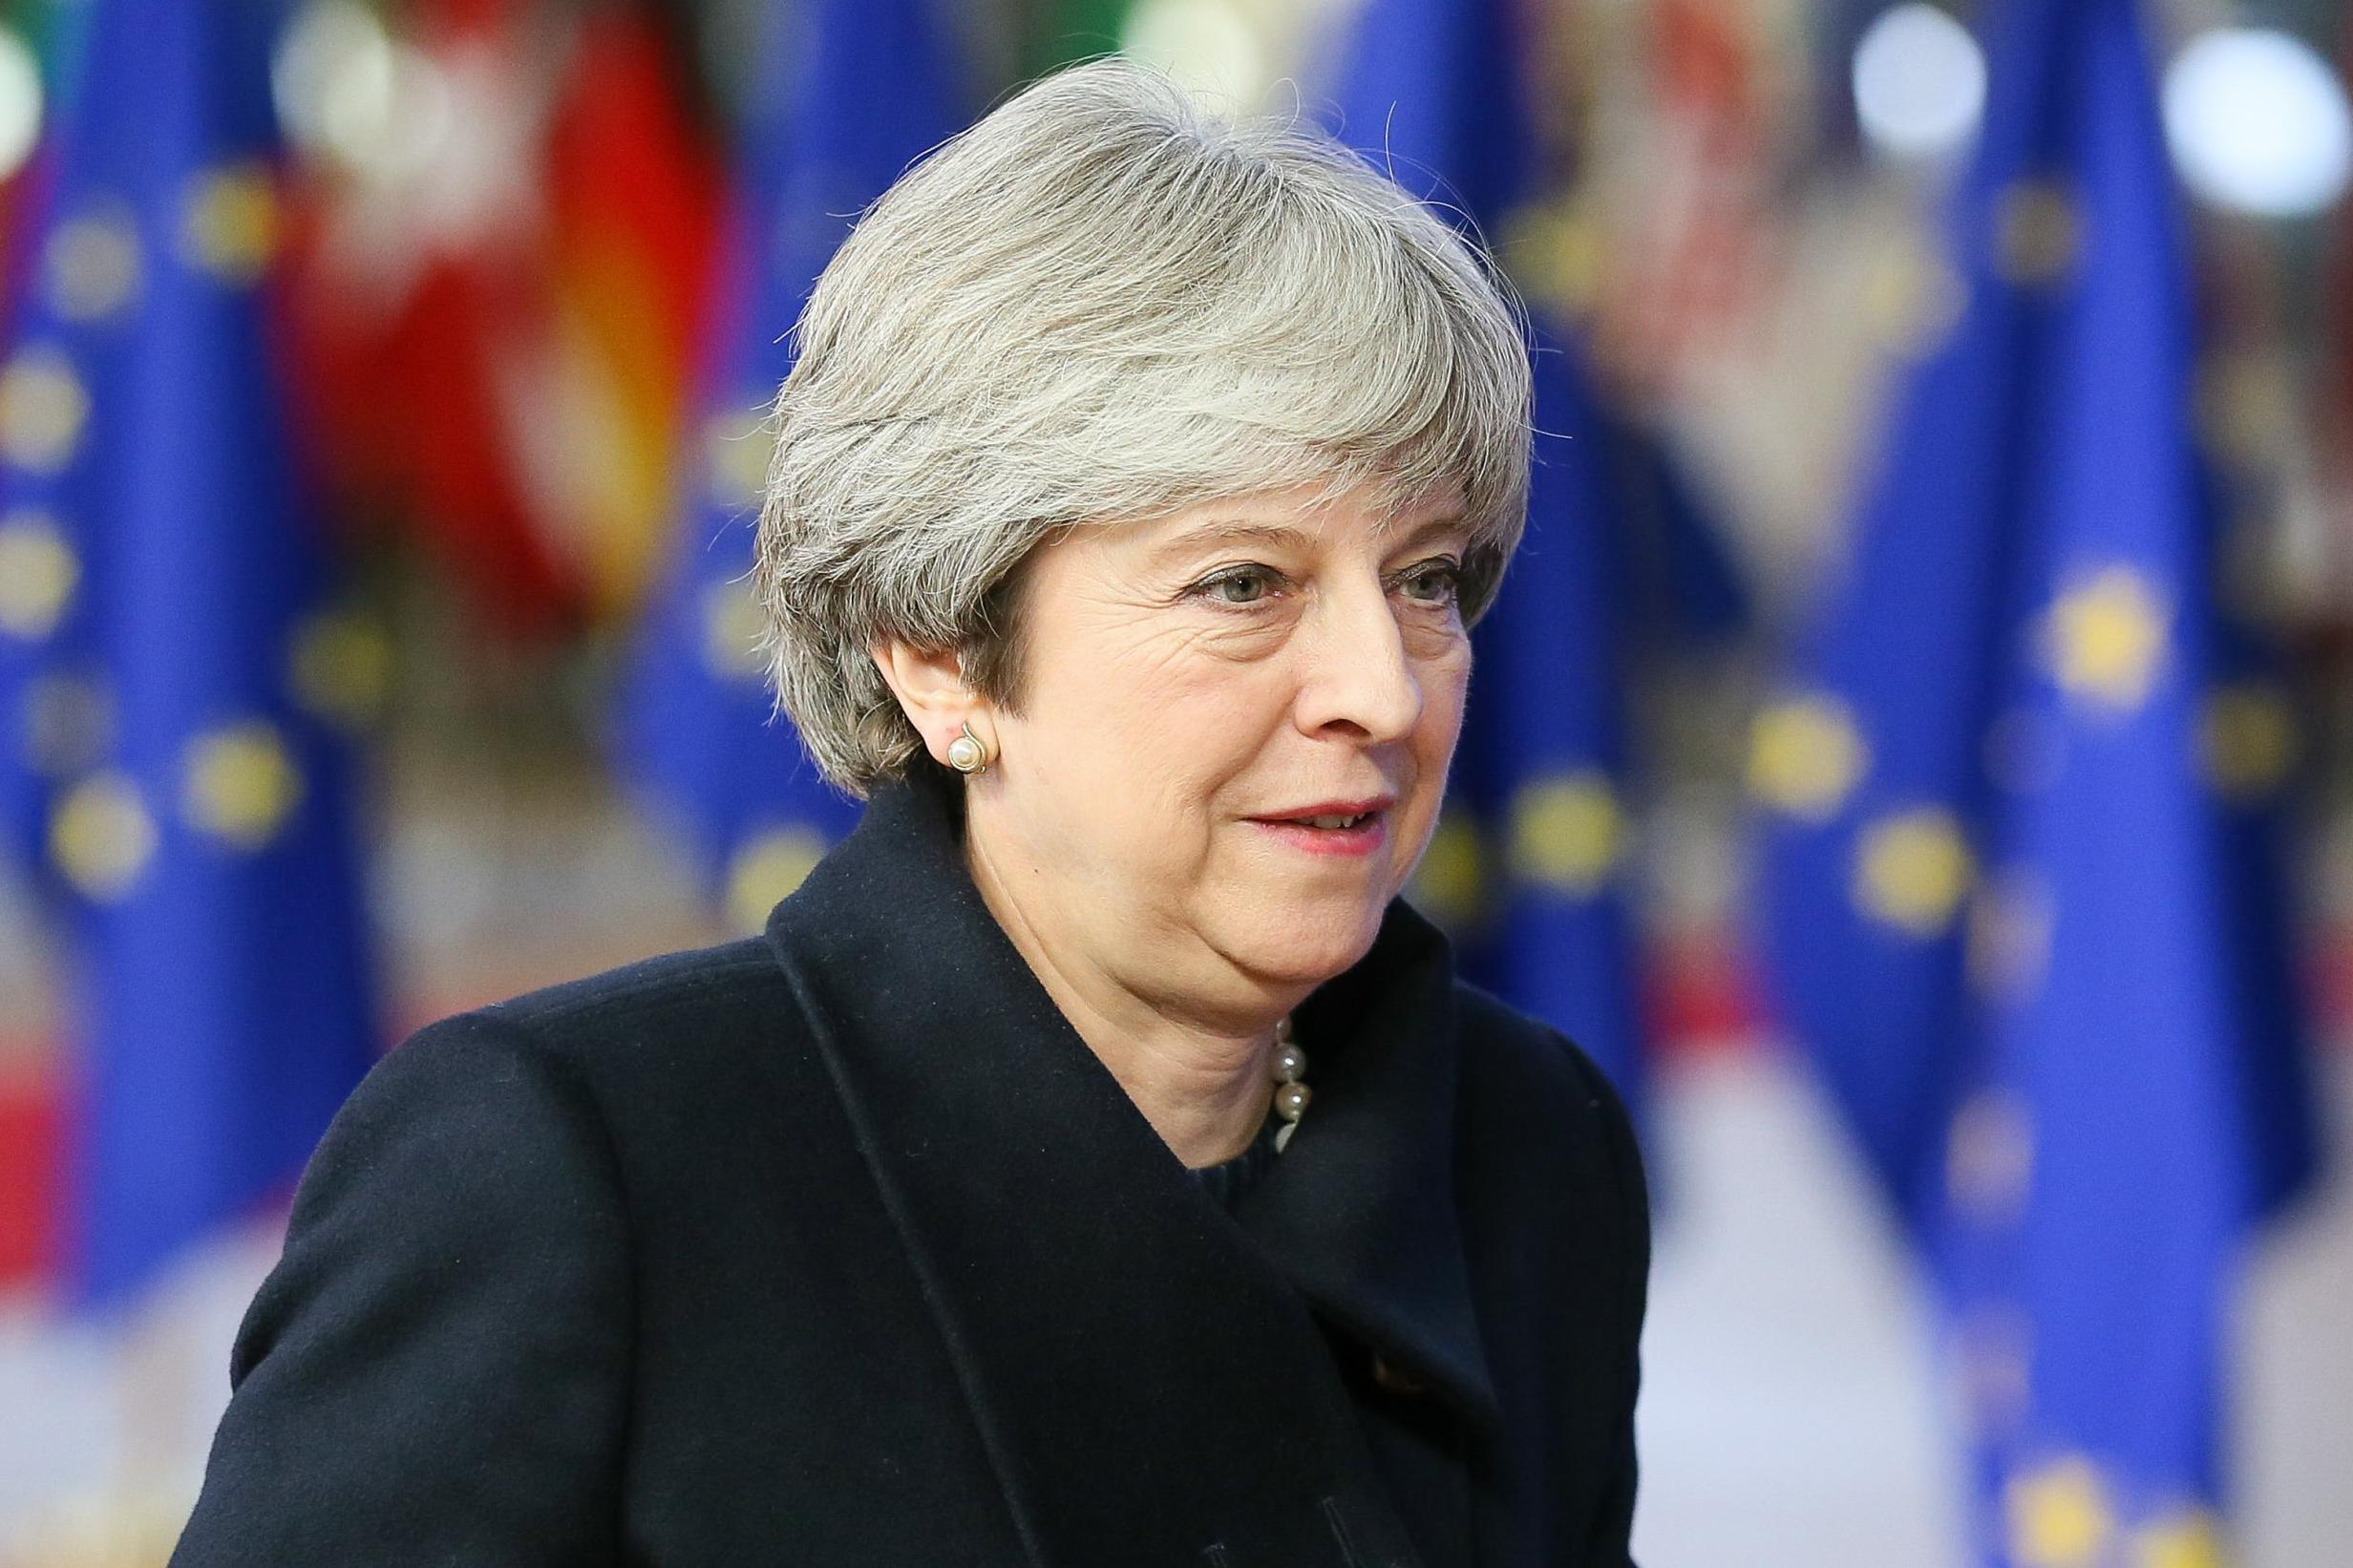 Theresa May's Feminism is Tested By the Issue of Abortion - The U.K. Labour Party, particularly Shadow Attorney General Shami Chakrabarti, has challenged Prime Minister Theresa May to prove she is a feminist--a label she embraces--by backing reform of Northern Ireland's abortion law. In the wake of Ireland's historic referendum, politicians have placed increased pressure on May to liberalize Northern Ireland's restrictive abortion laws. Abortion is only legal in Northern Ireland if the pregnancy poses a serious threat to the woman's life or health, which is more restrictive than the laws in the rest of the U.K.